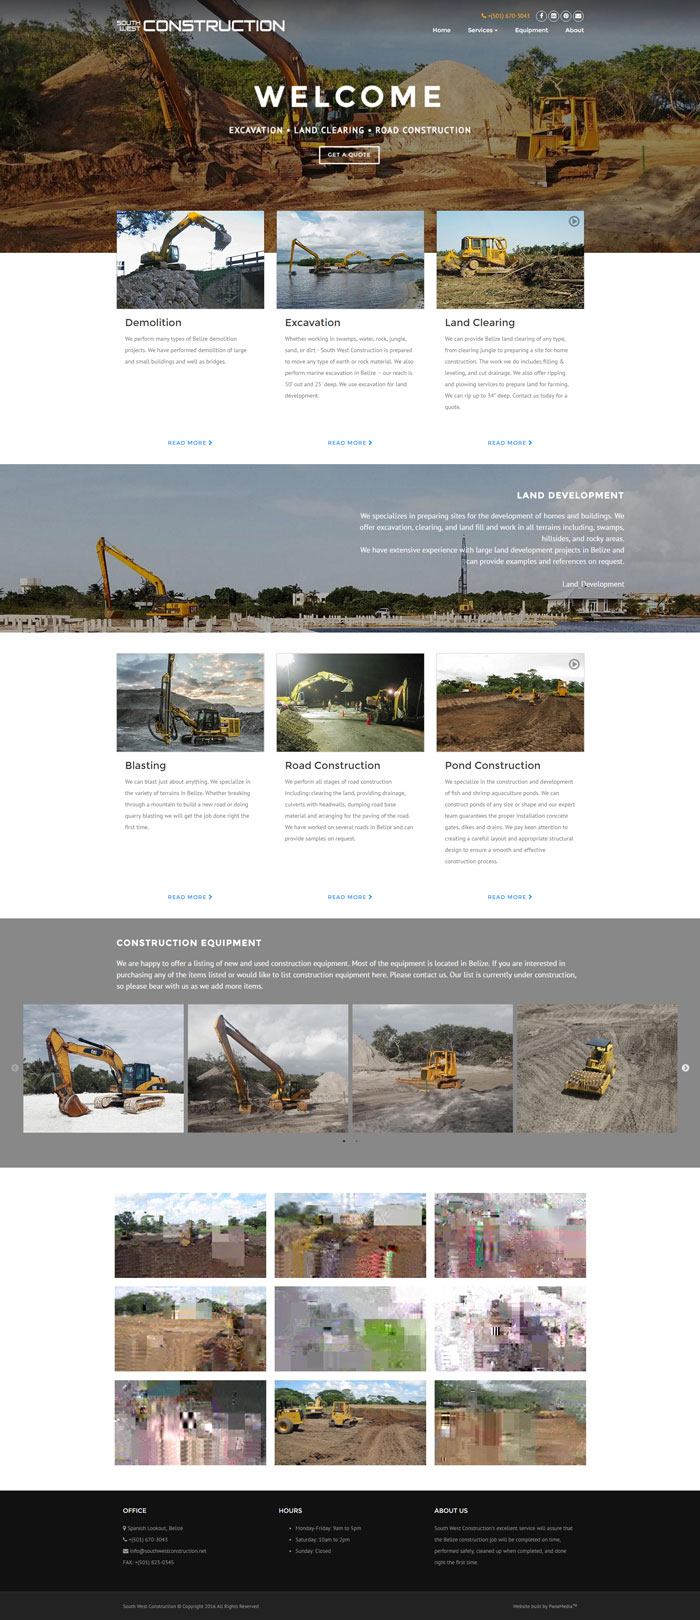 portfolio-website-south-west-construction-1